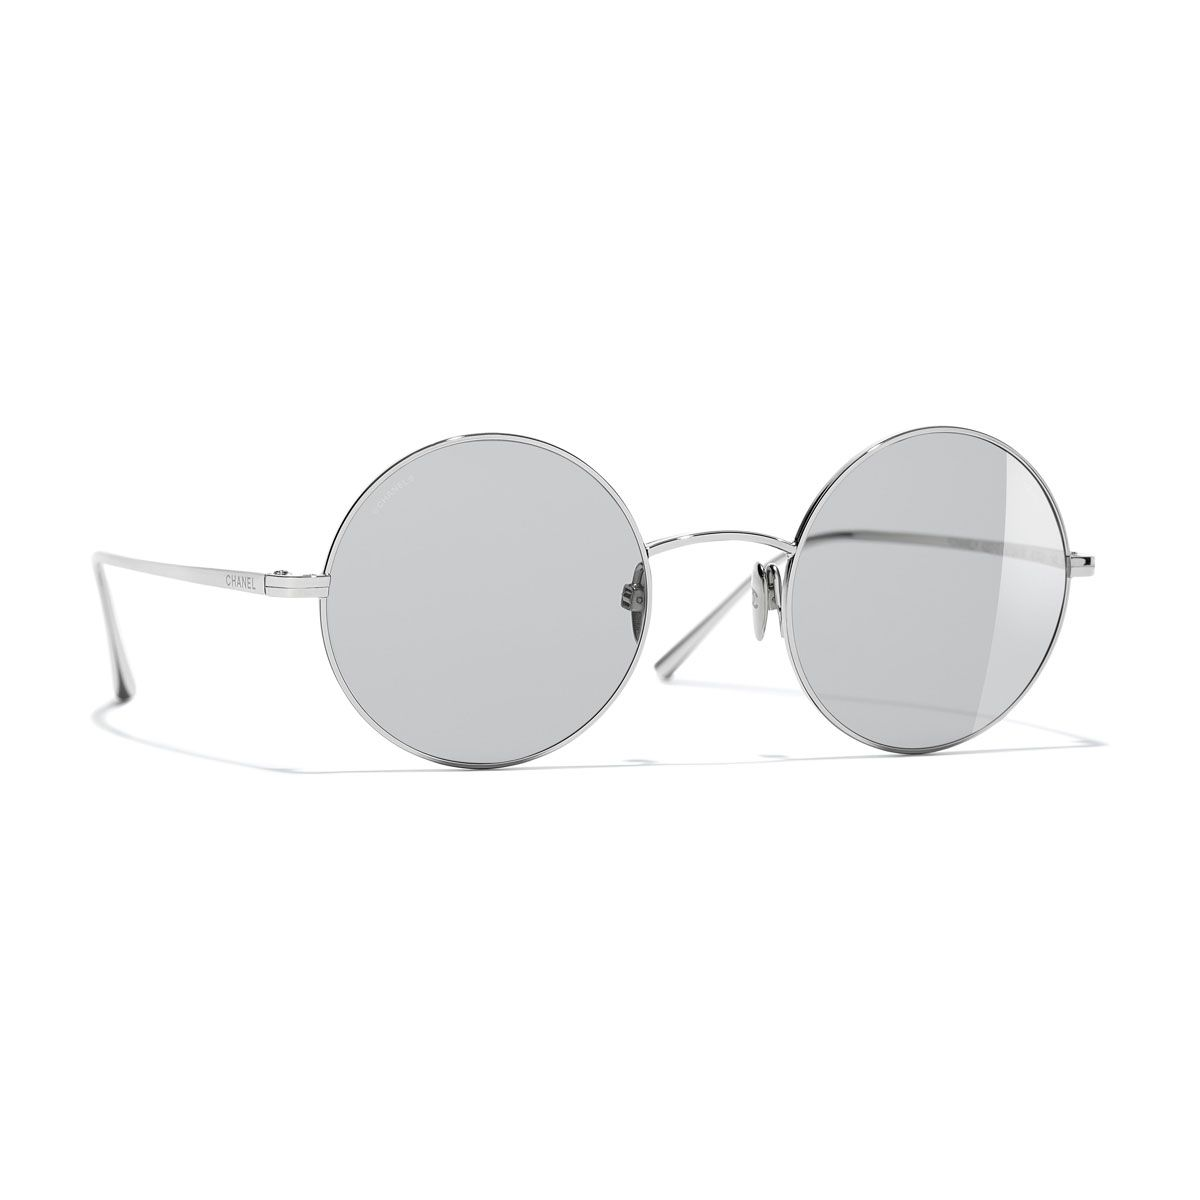 Round Sunglasses 487.5 Sunglasses